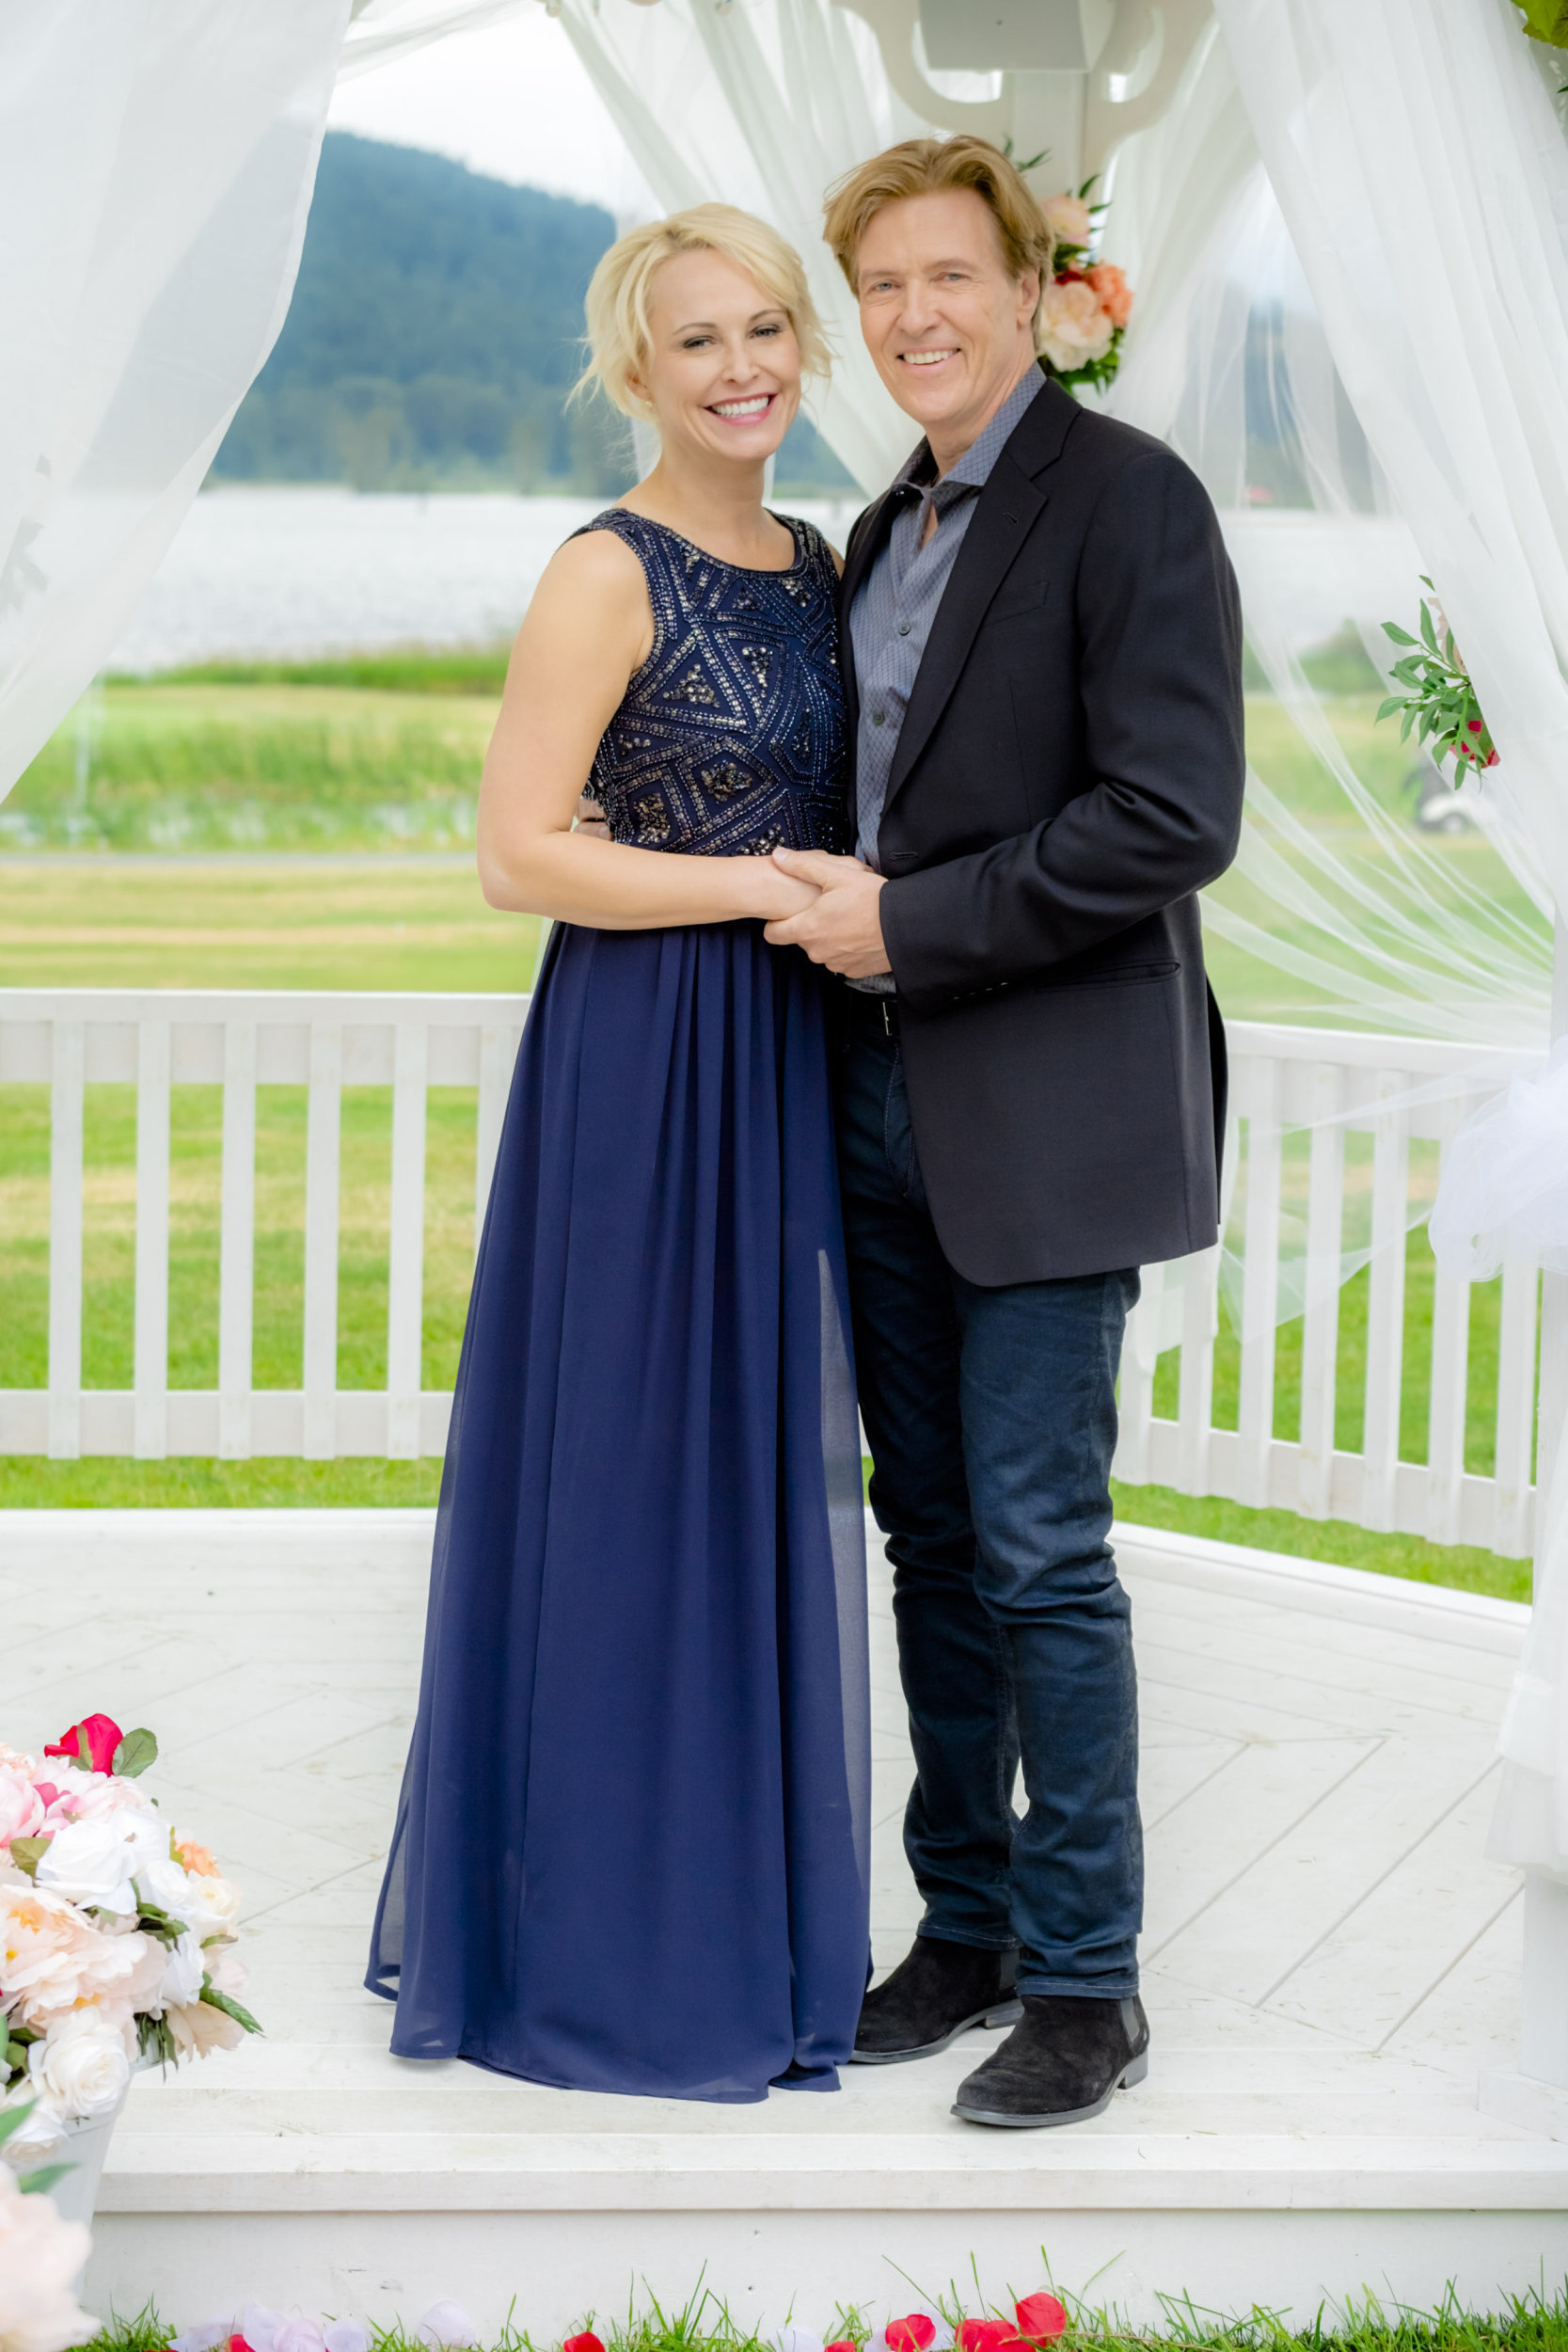 Wedding March 3.Wedding March 3 Here Comes The Bride About Hallmark Channel